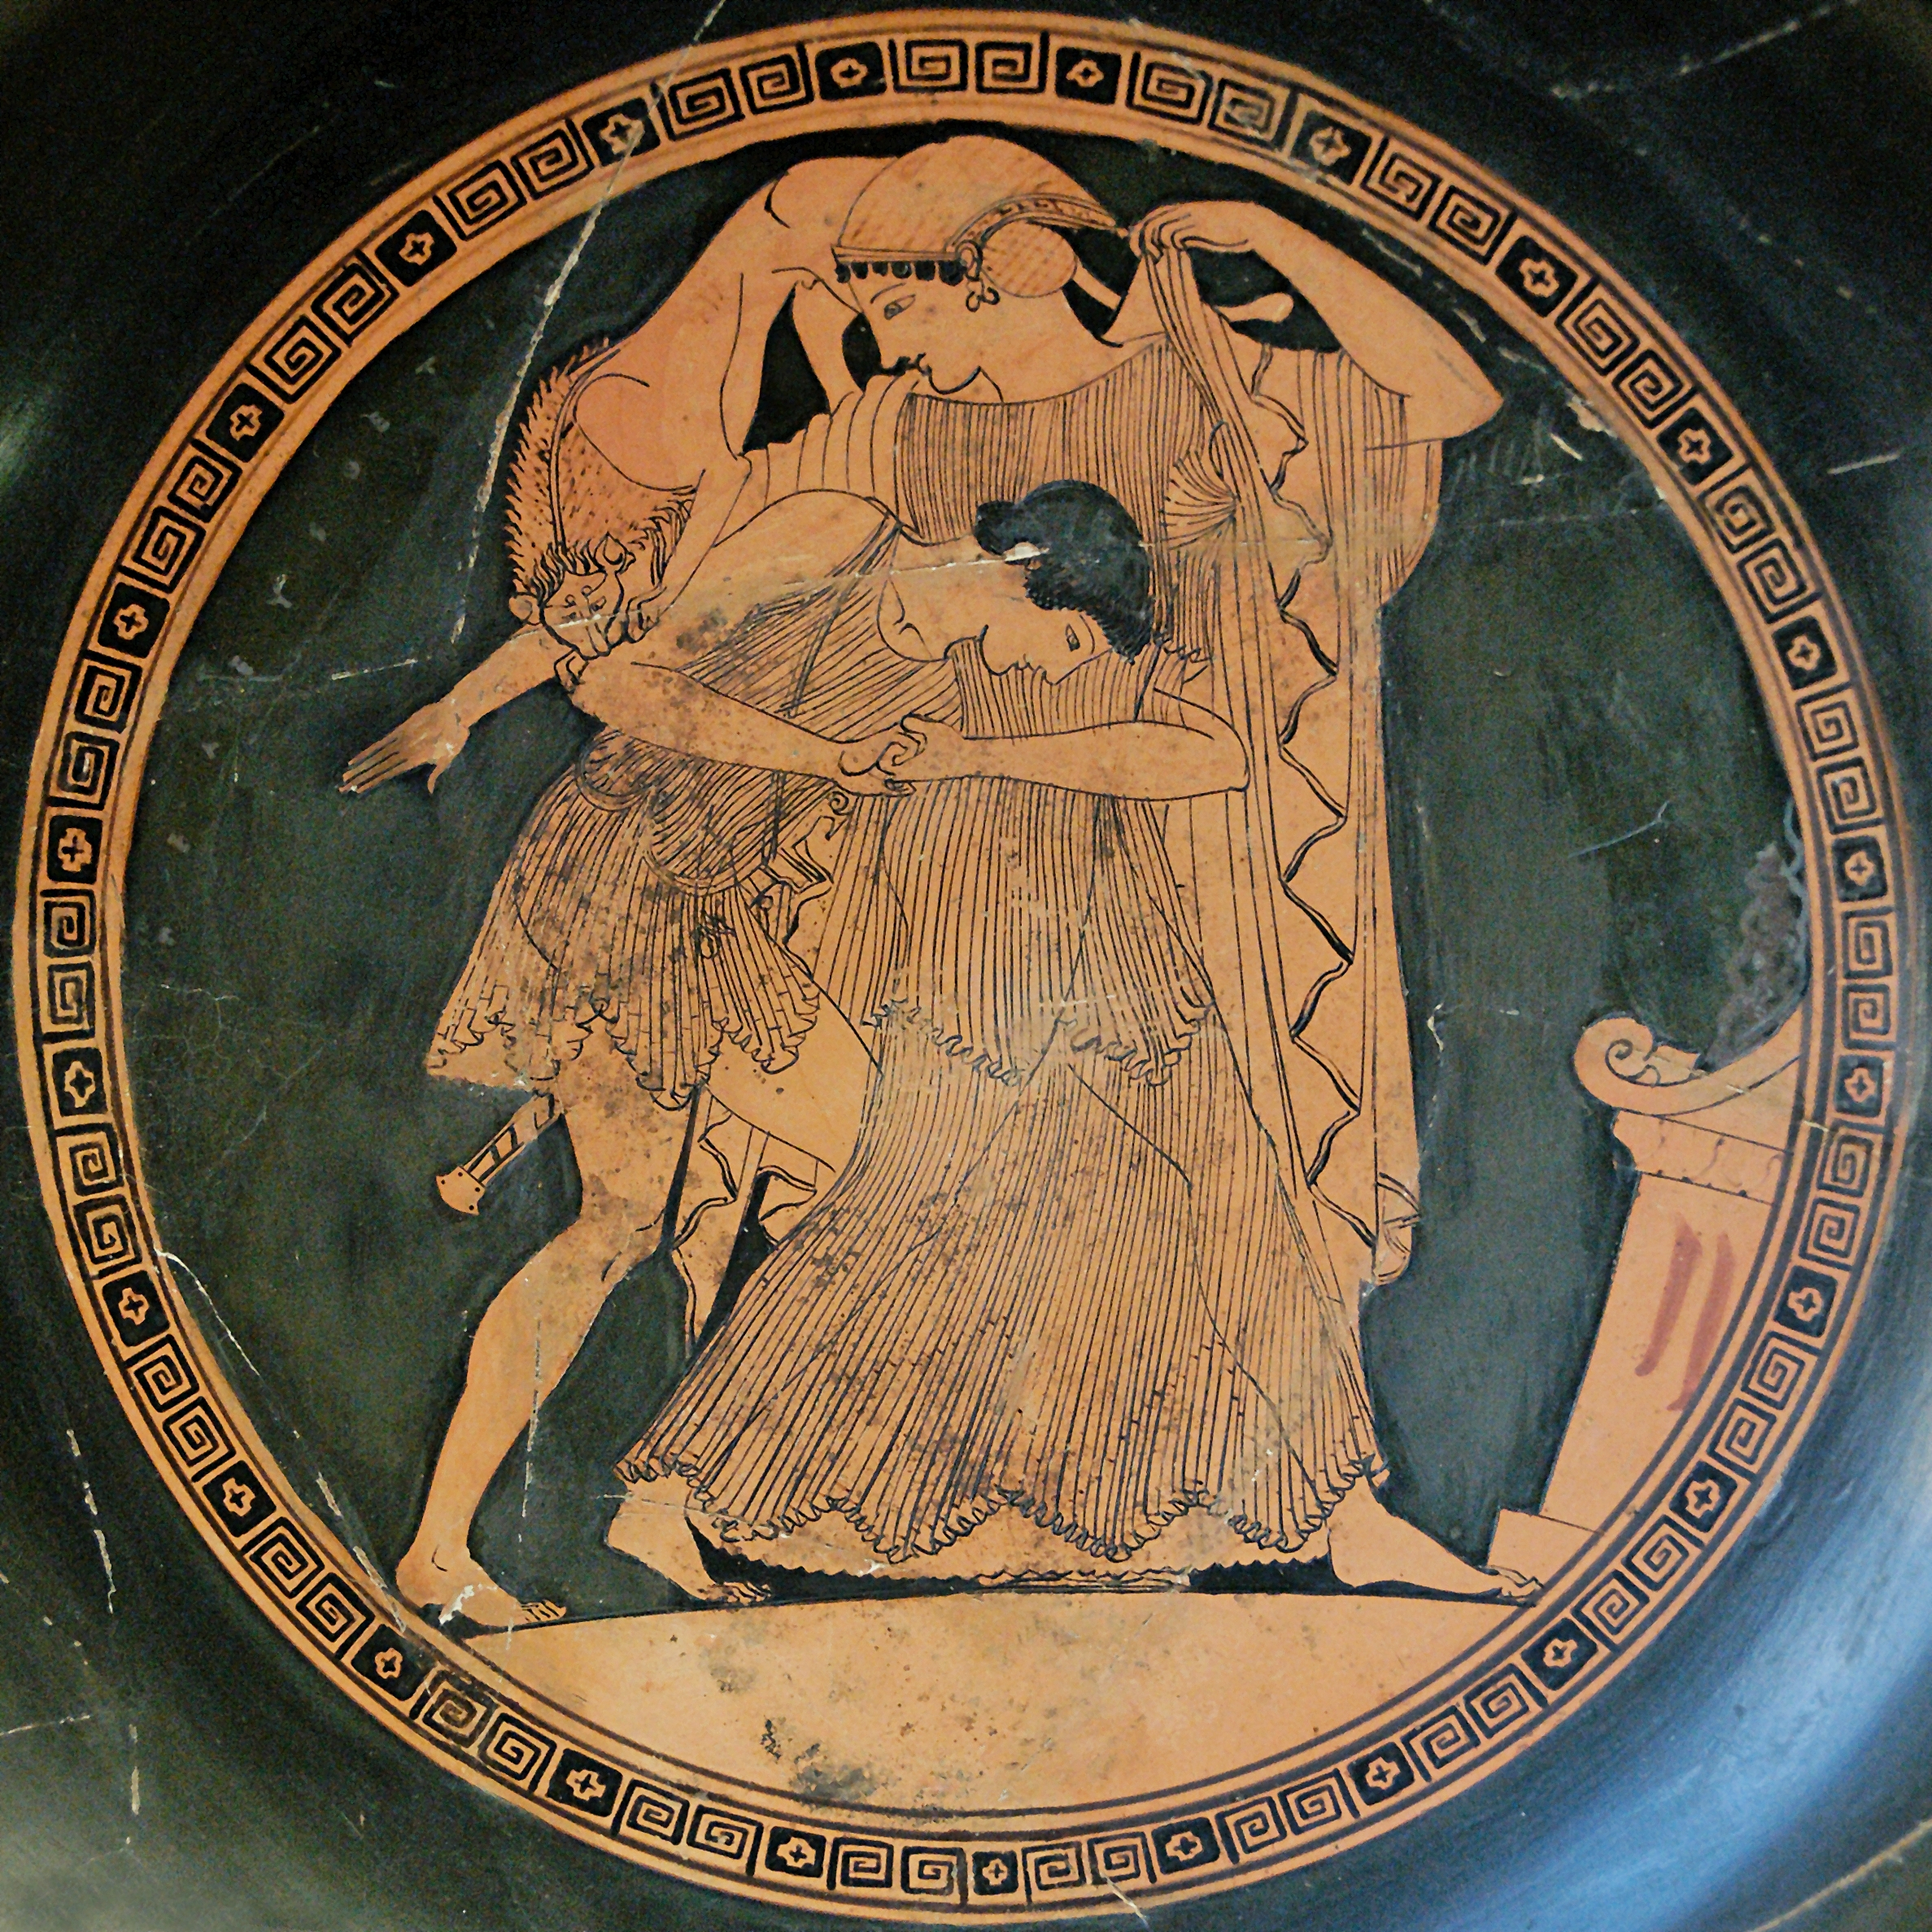 Figure 3: On an early fifth-century BC drinking cup from Attica, the sea nymph Thetis changes her shape into, among other things, a lion (depicted on her right shoulder here) to escape the grasp of her future husband Peleus.   Photo credit: Wikimedia Commons.